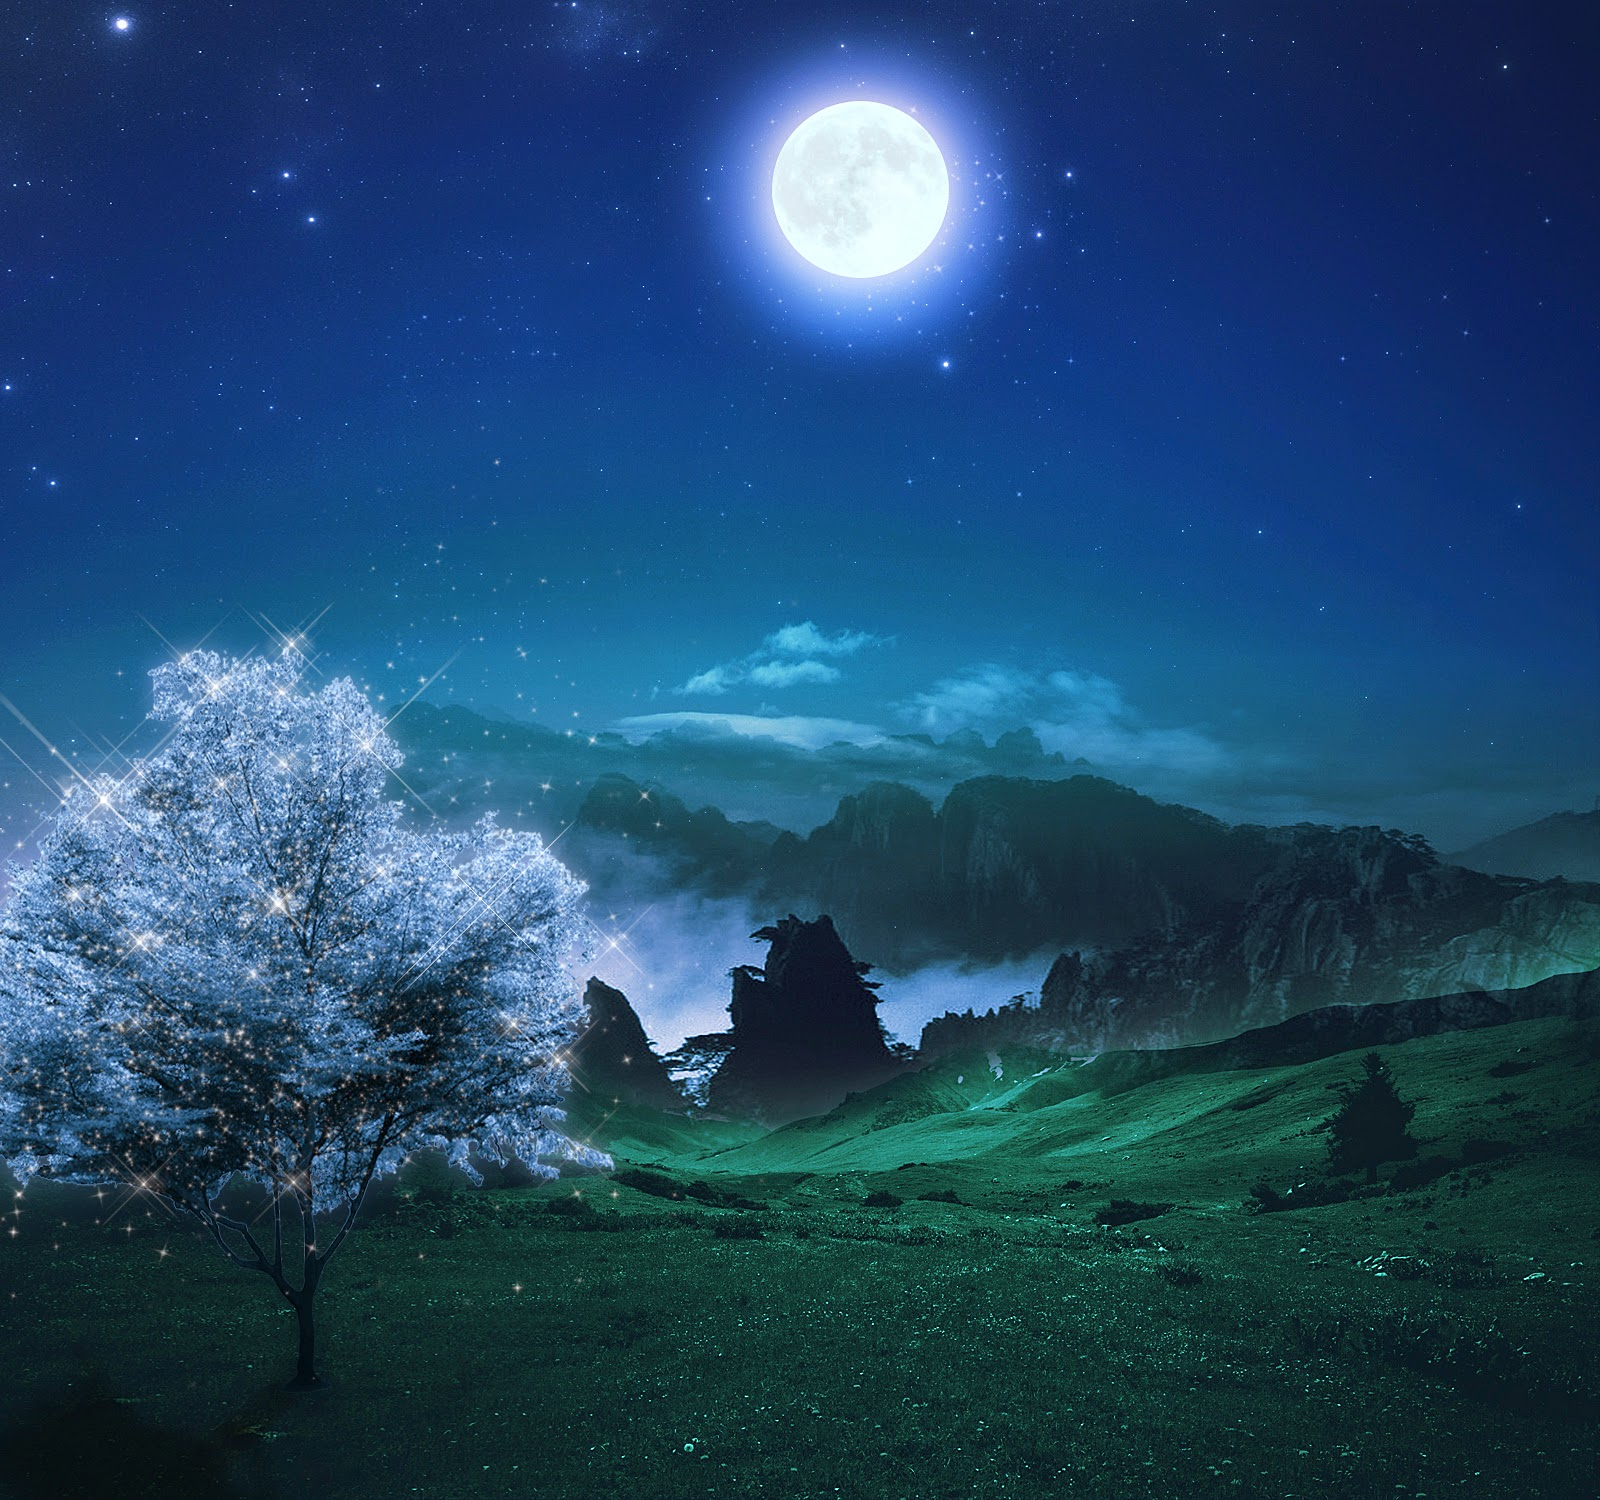 Wallpaper Hd For Nature: Night Nature HD Wallpapers For PC